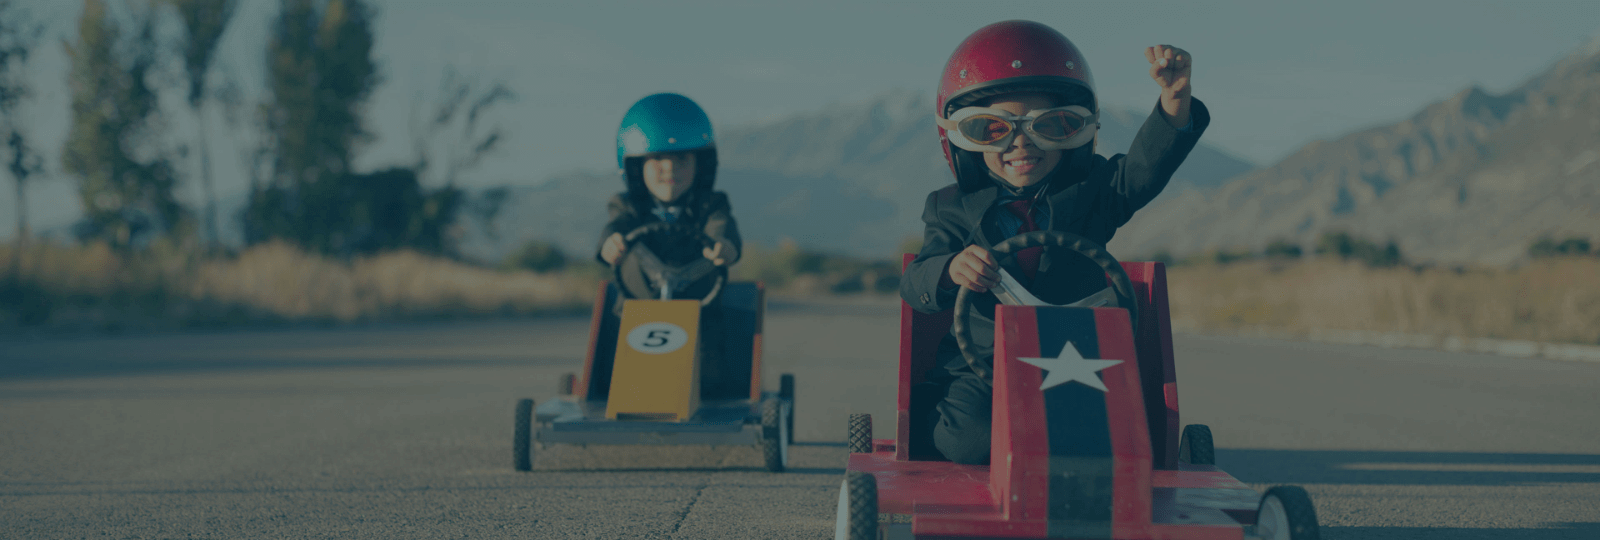 Children in go carts